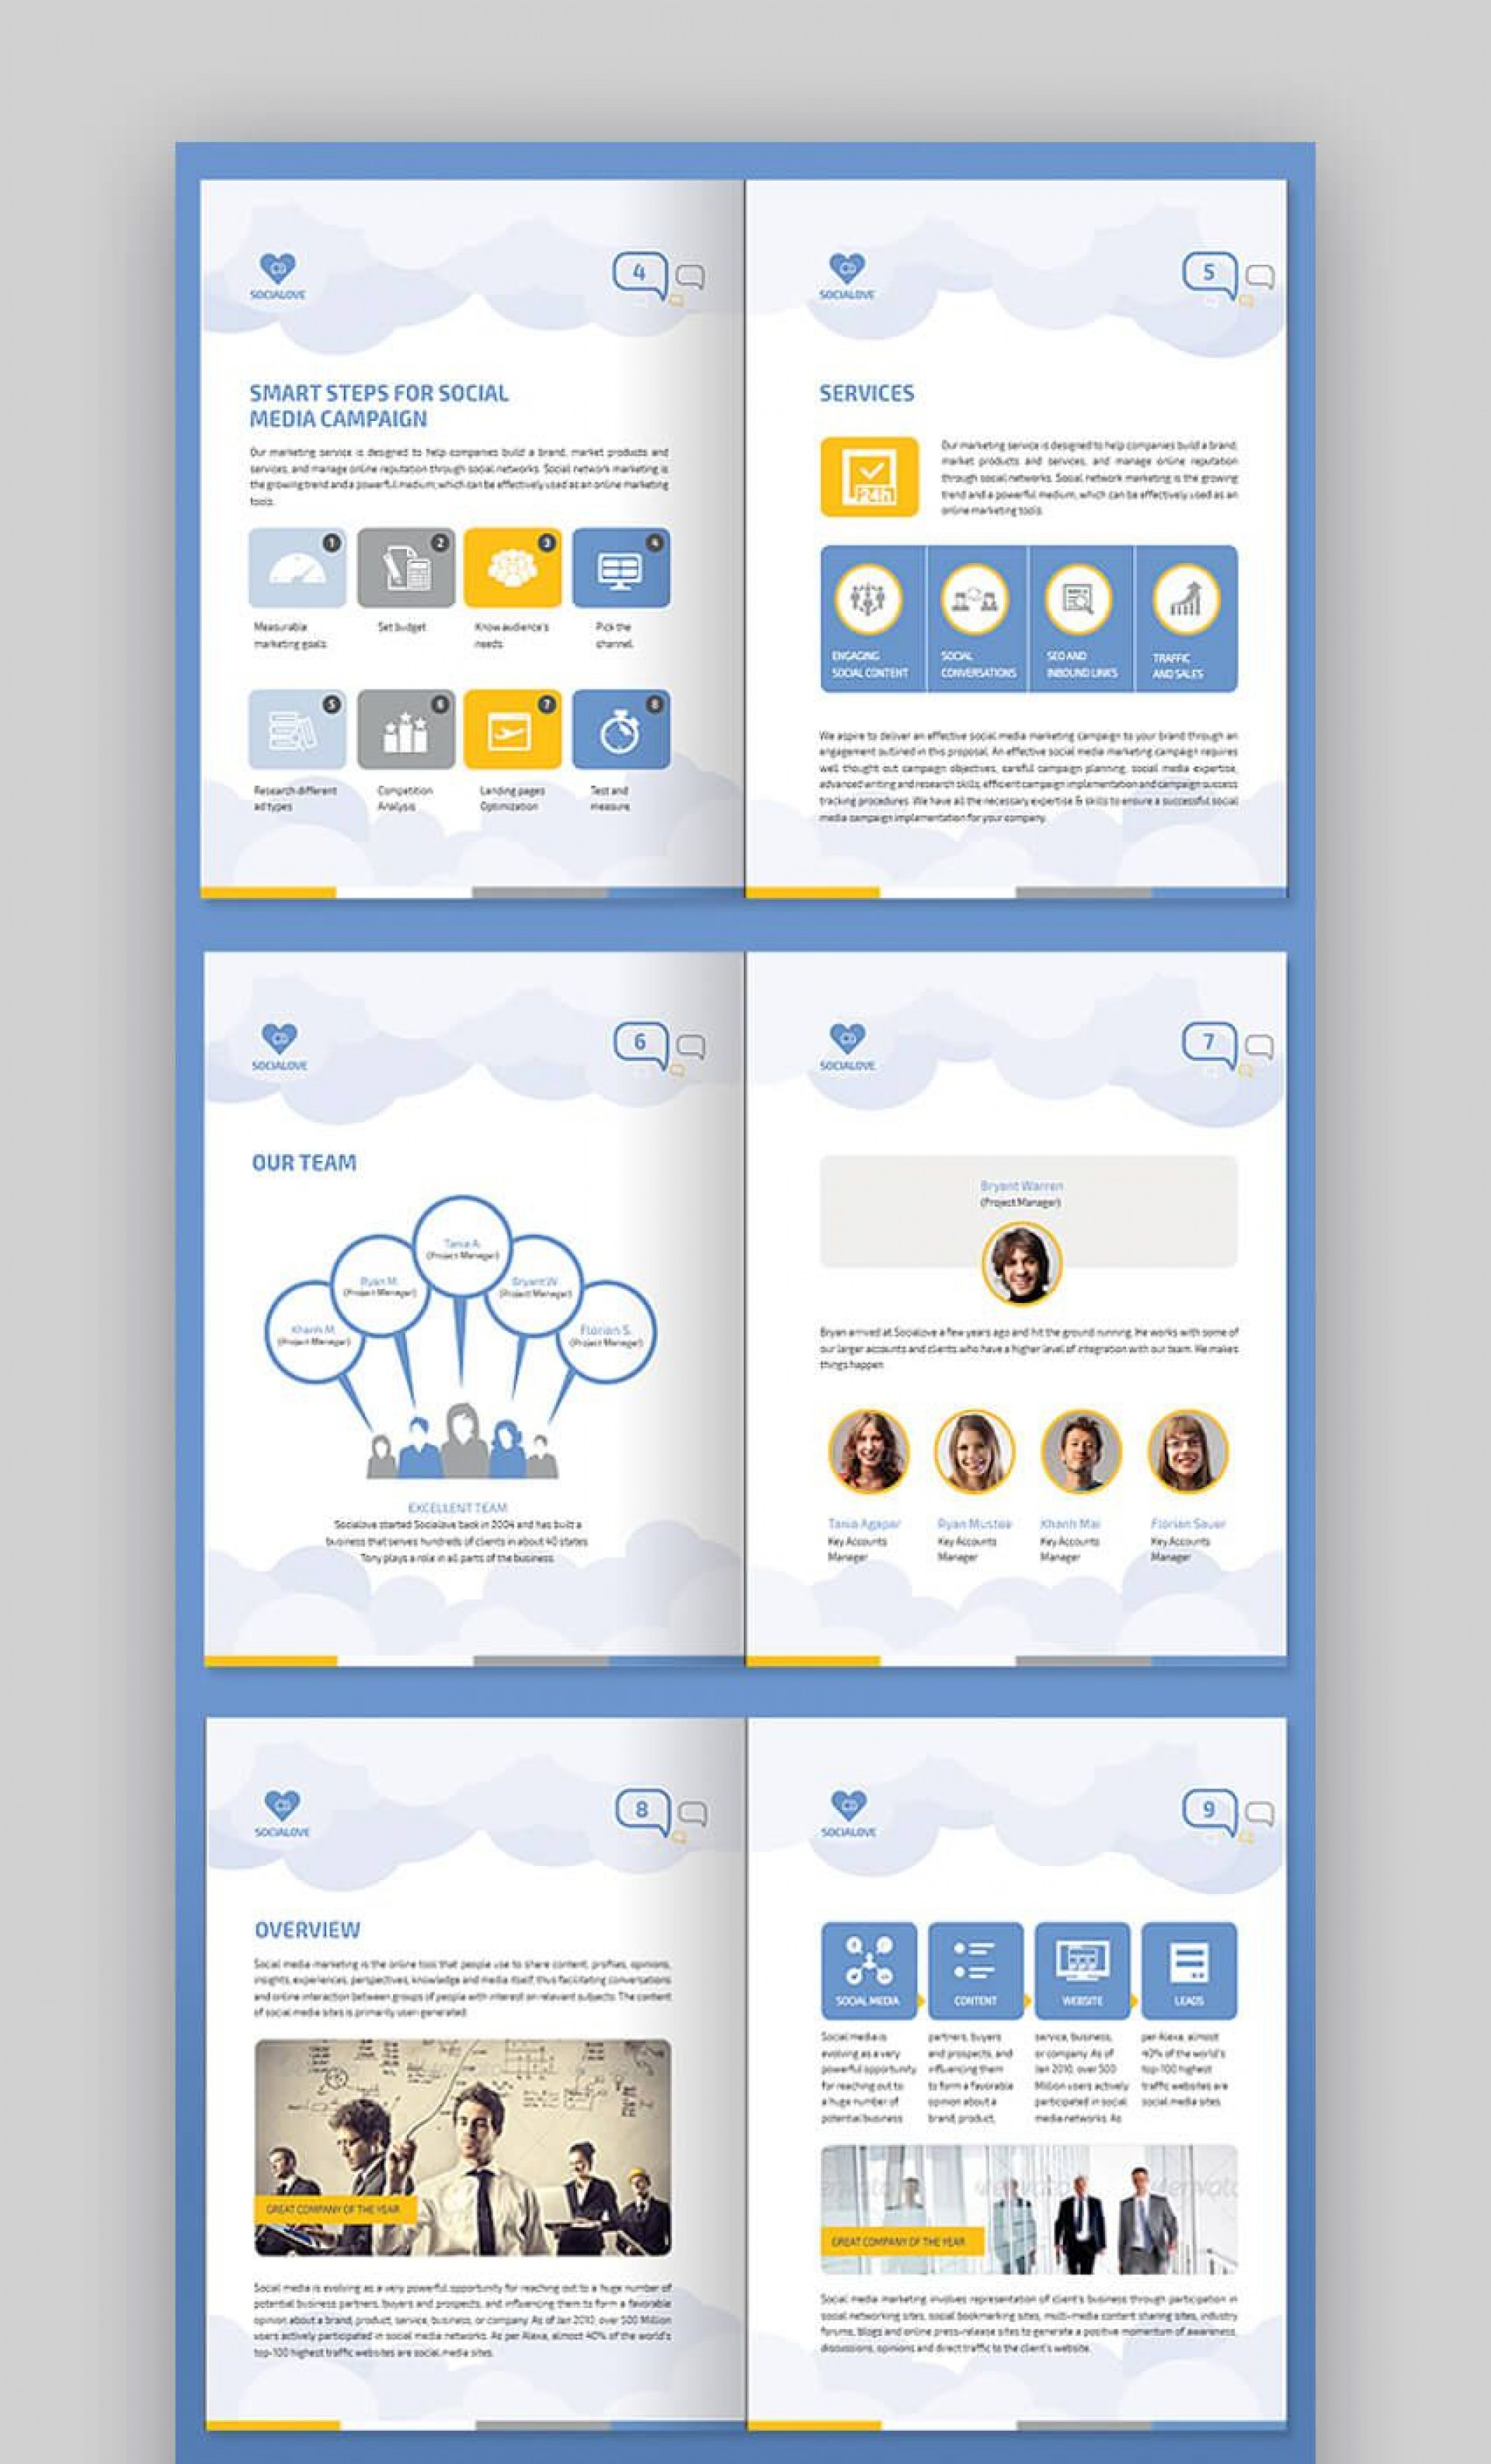 009 Imposing Social Media Proposal Template Image  Plan Sample Pdf 20181920